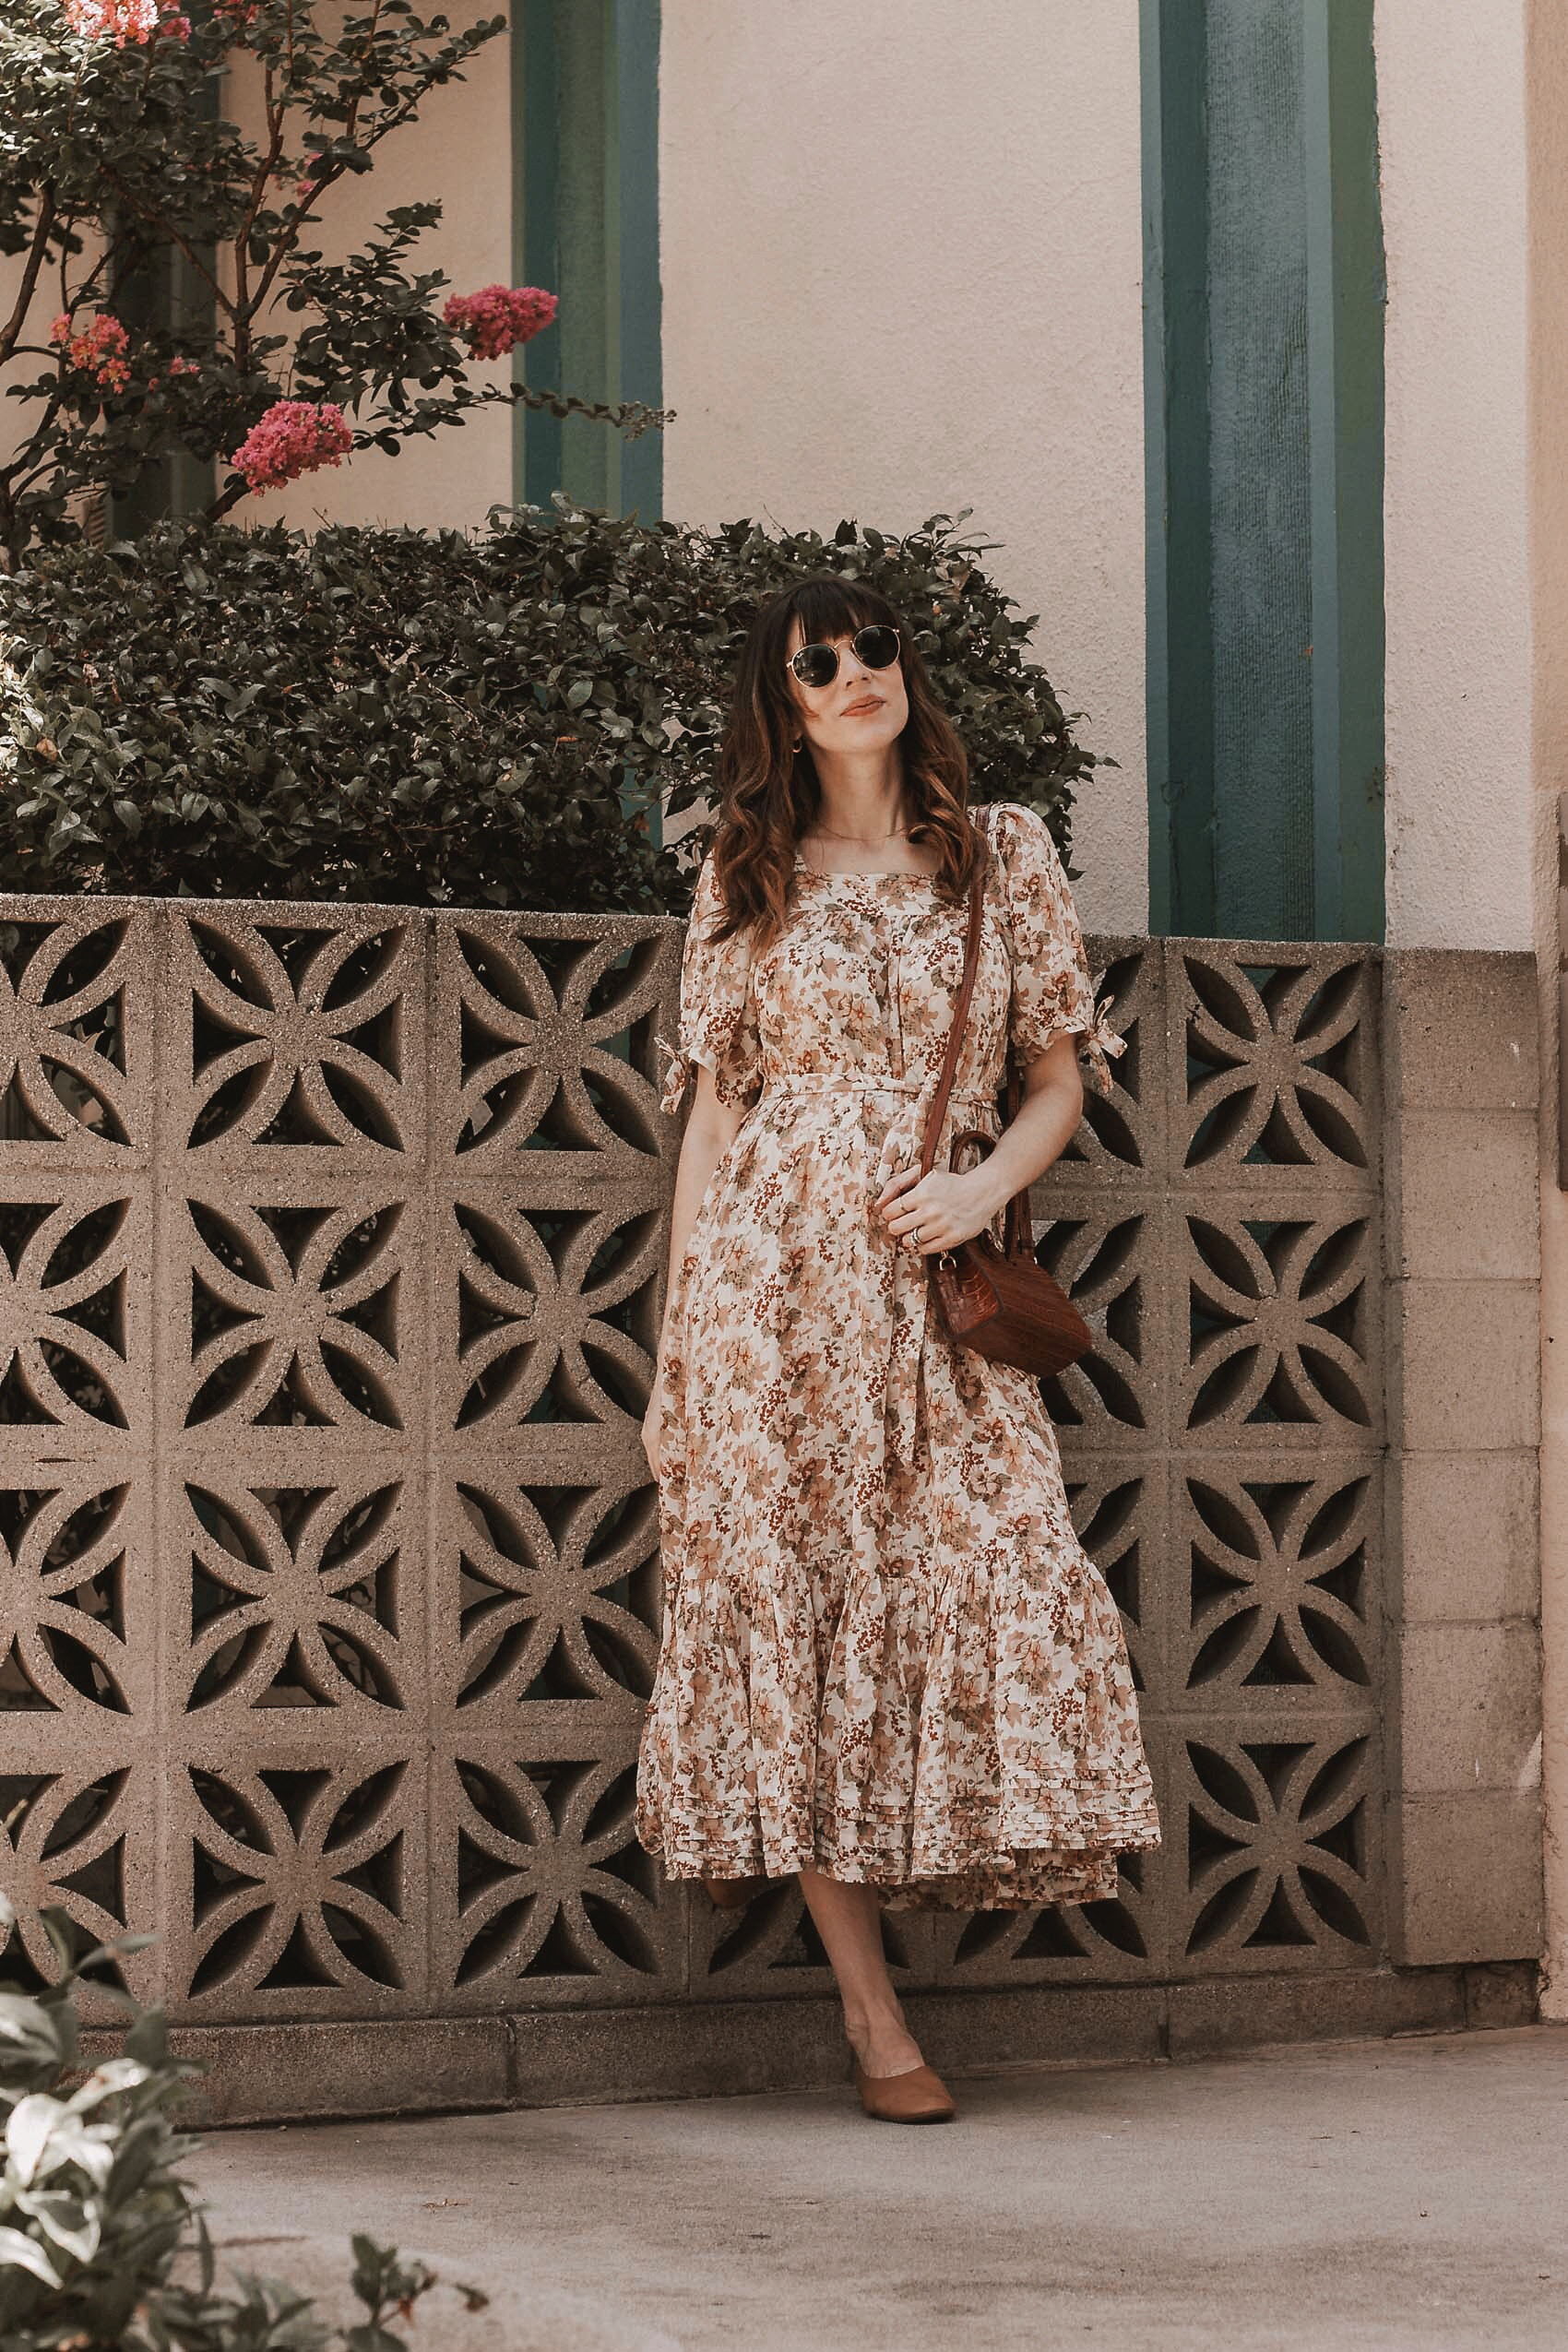 Pregnant Los Angeles Blogger wearing ethical fashion brand Doen